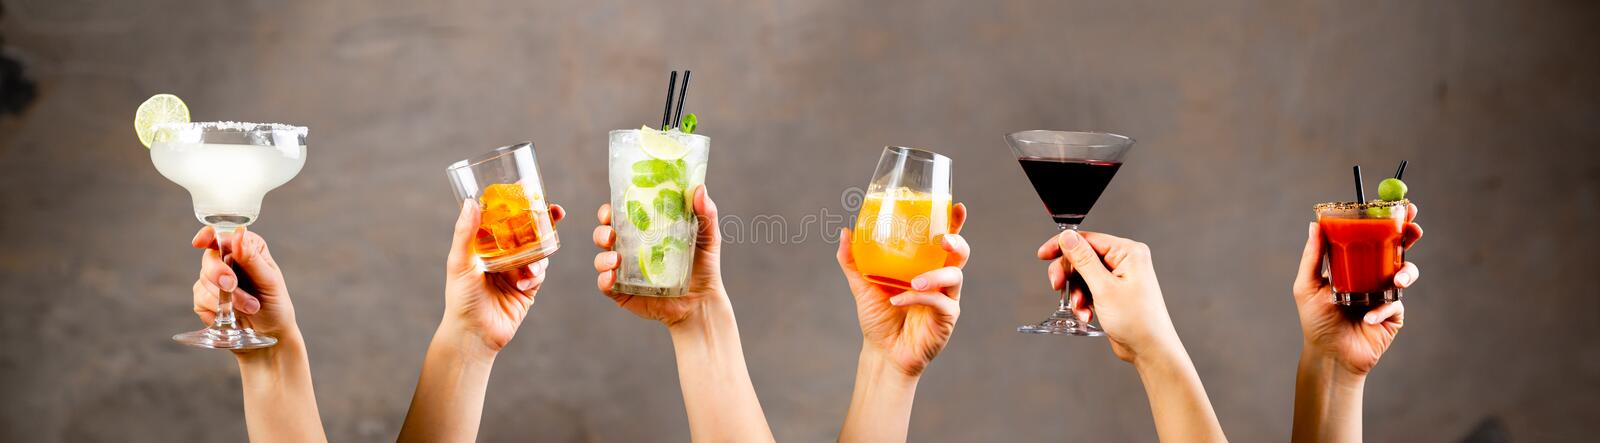 Hands holding classic cocktails on rustic background royalty free stock photography